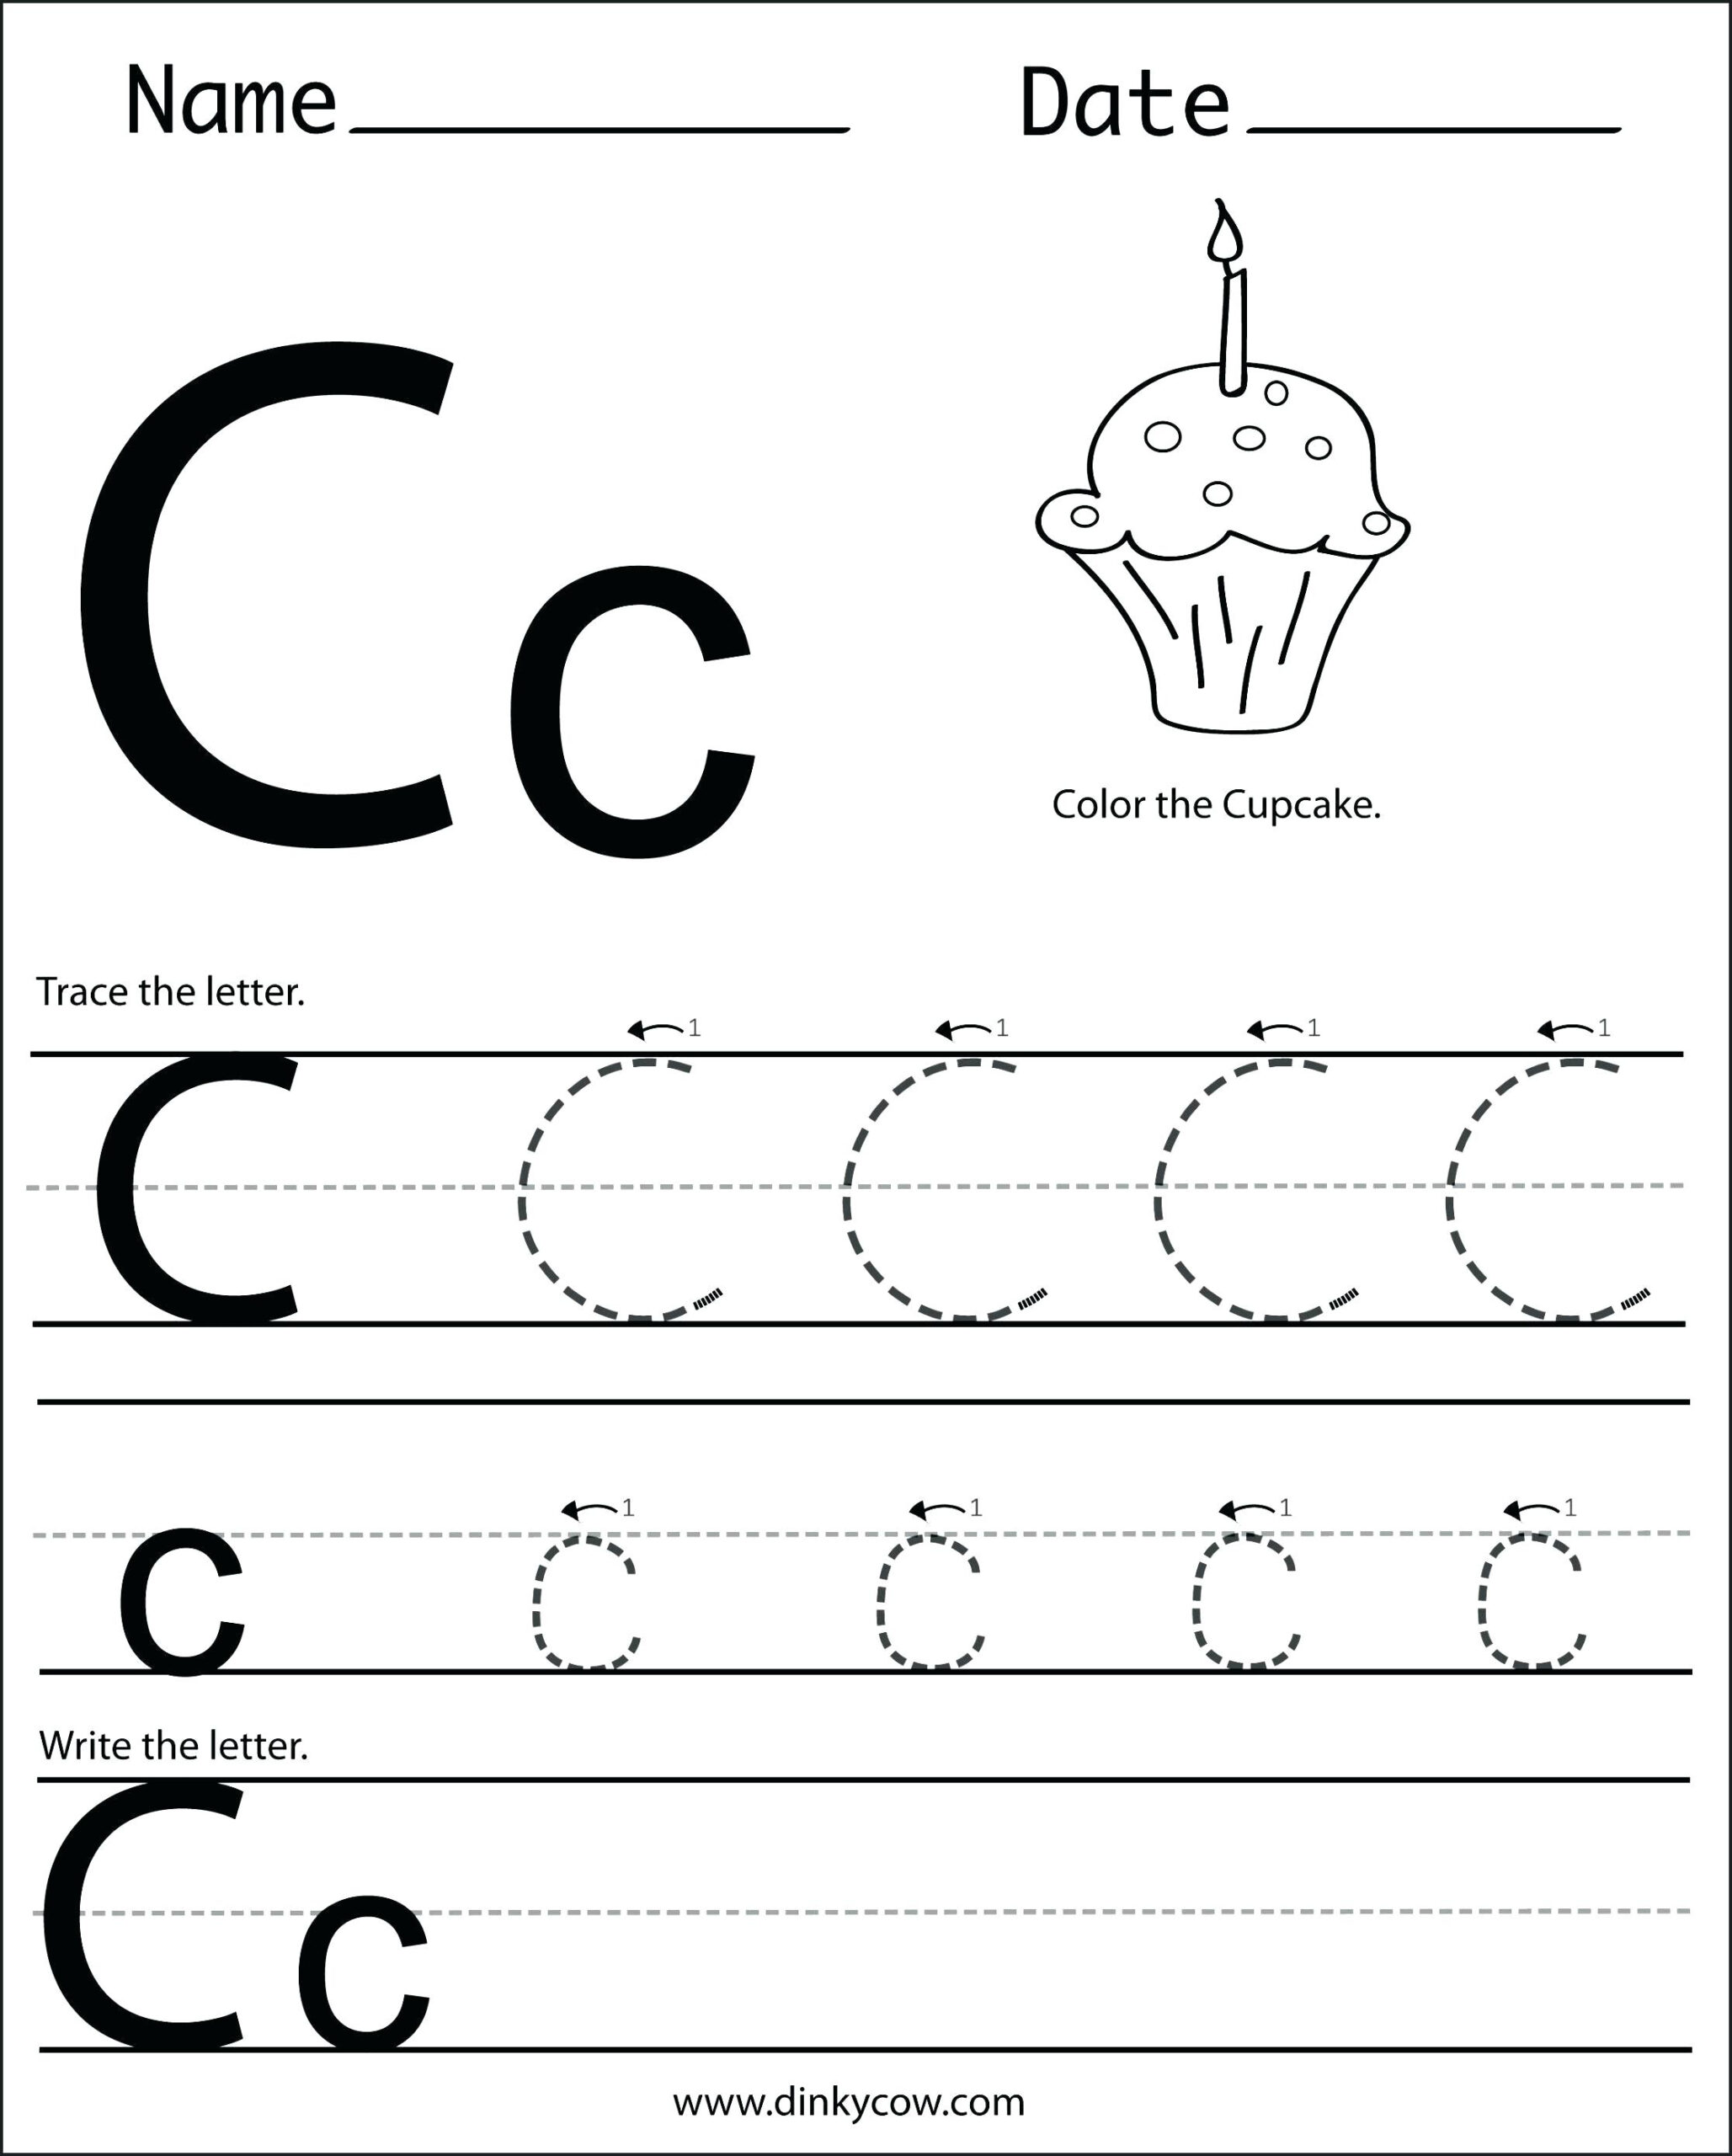 Letter C Worksheets To Learning. Letter C Worksheets - Misc with regard to Letter C Worksheets For Preschool